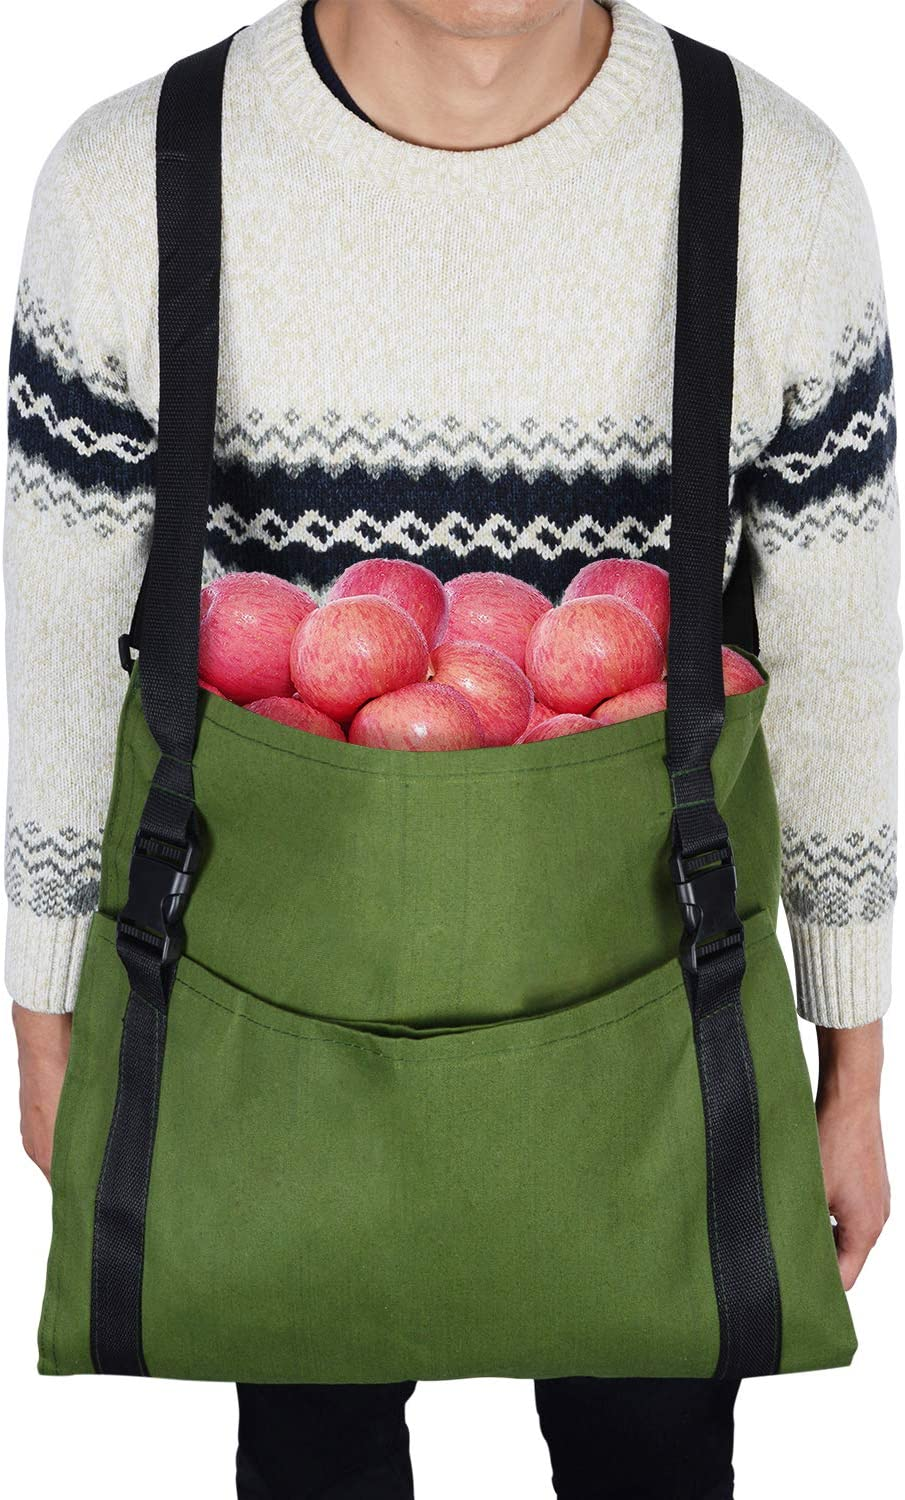 V&H Fruit Picking Bag Vegetable Harvest Apples Berry Garden Picking Bag Garden Apron,Farm Helper, Free Your arm and Hand